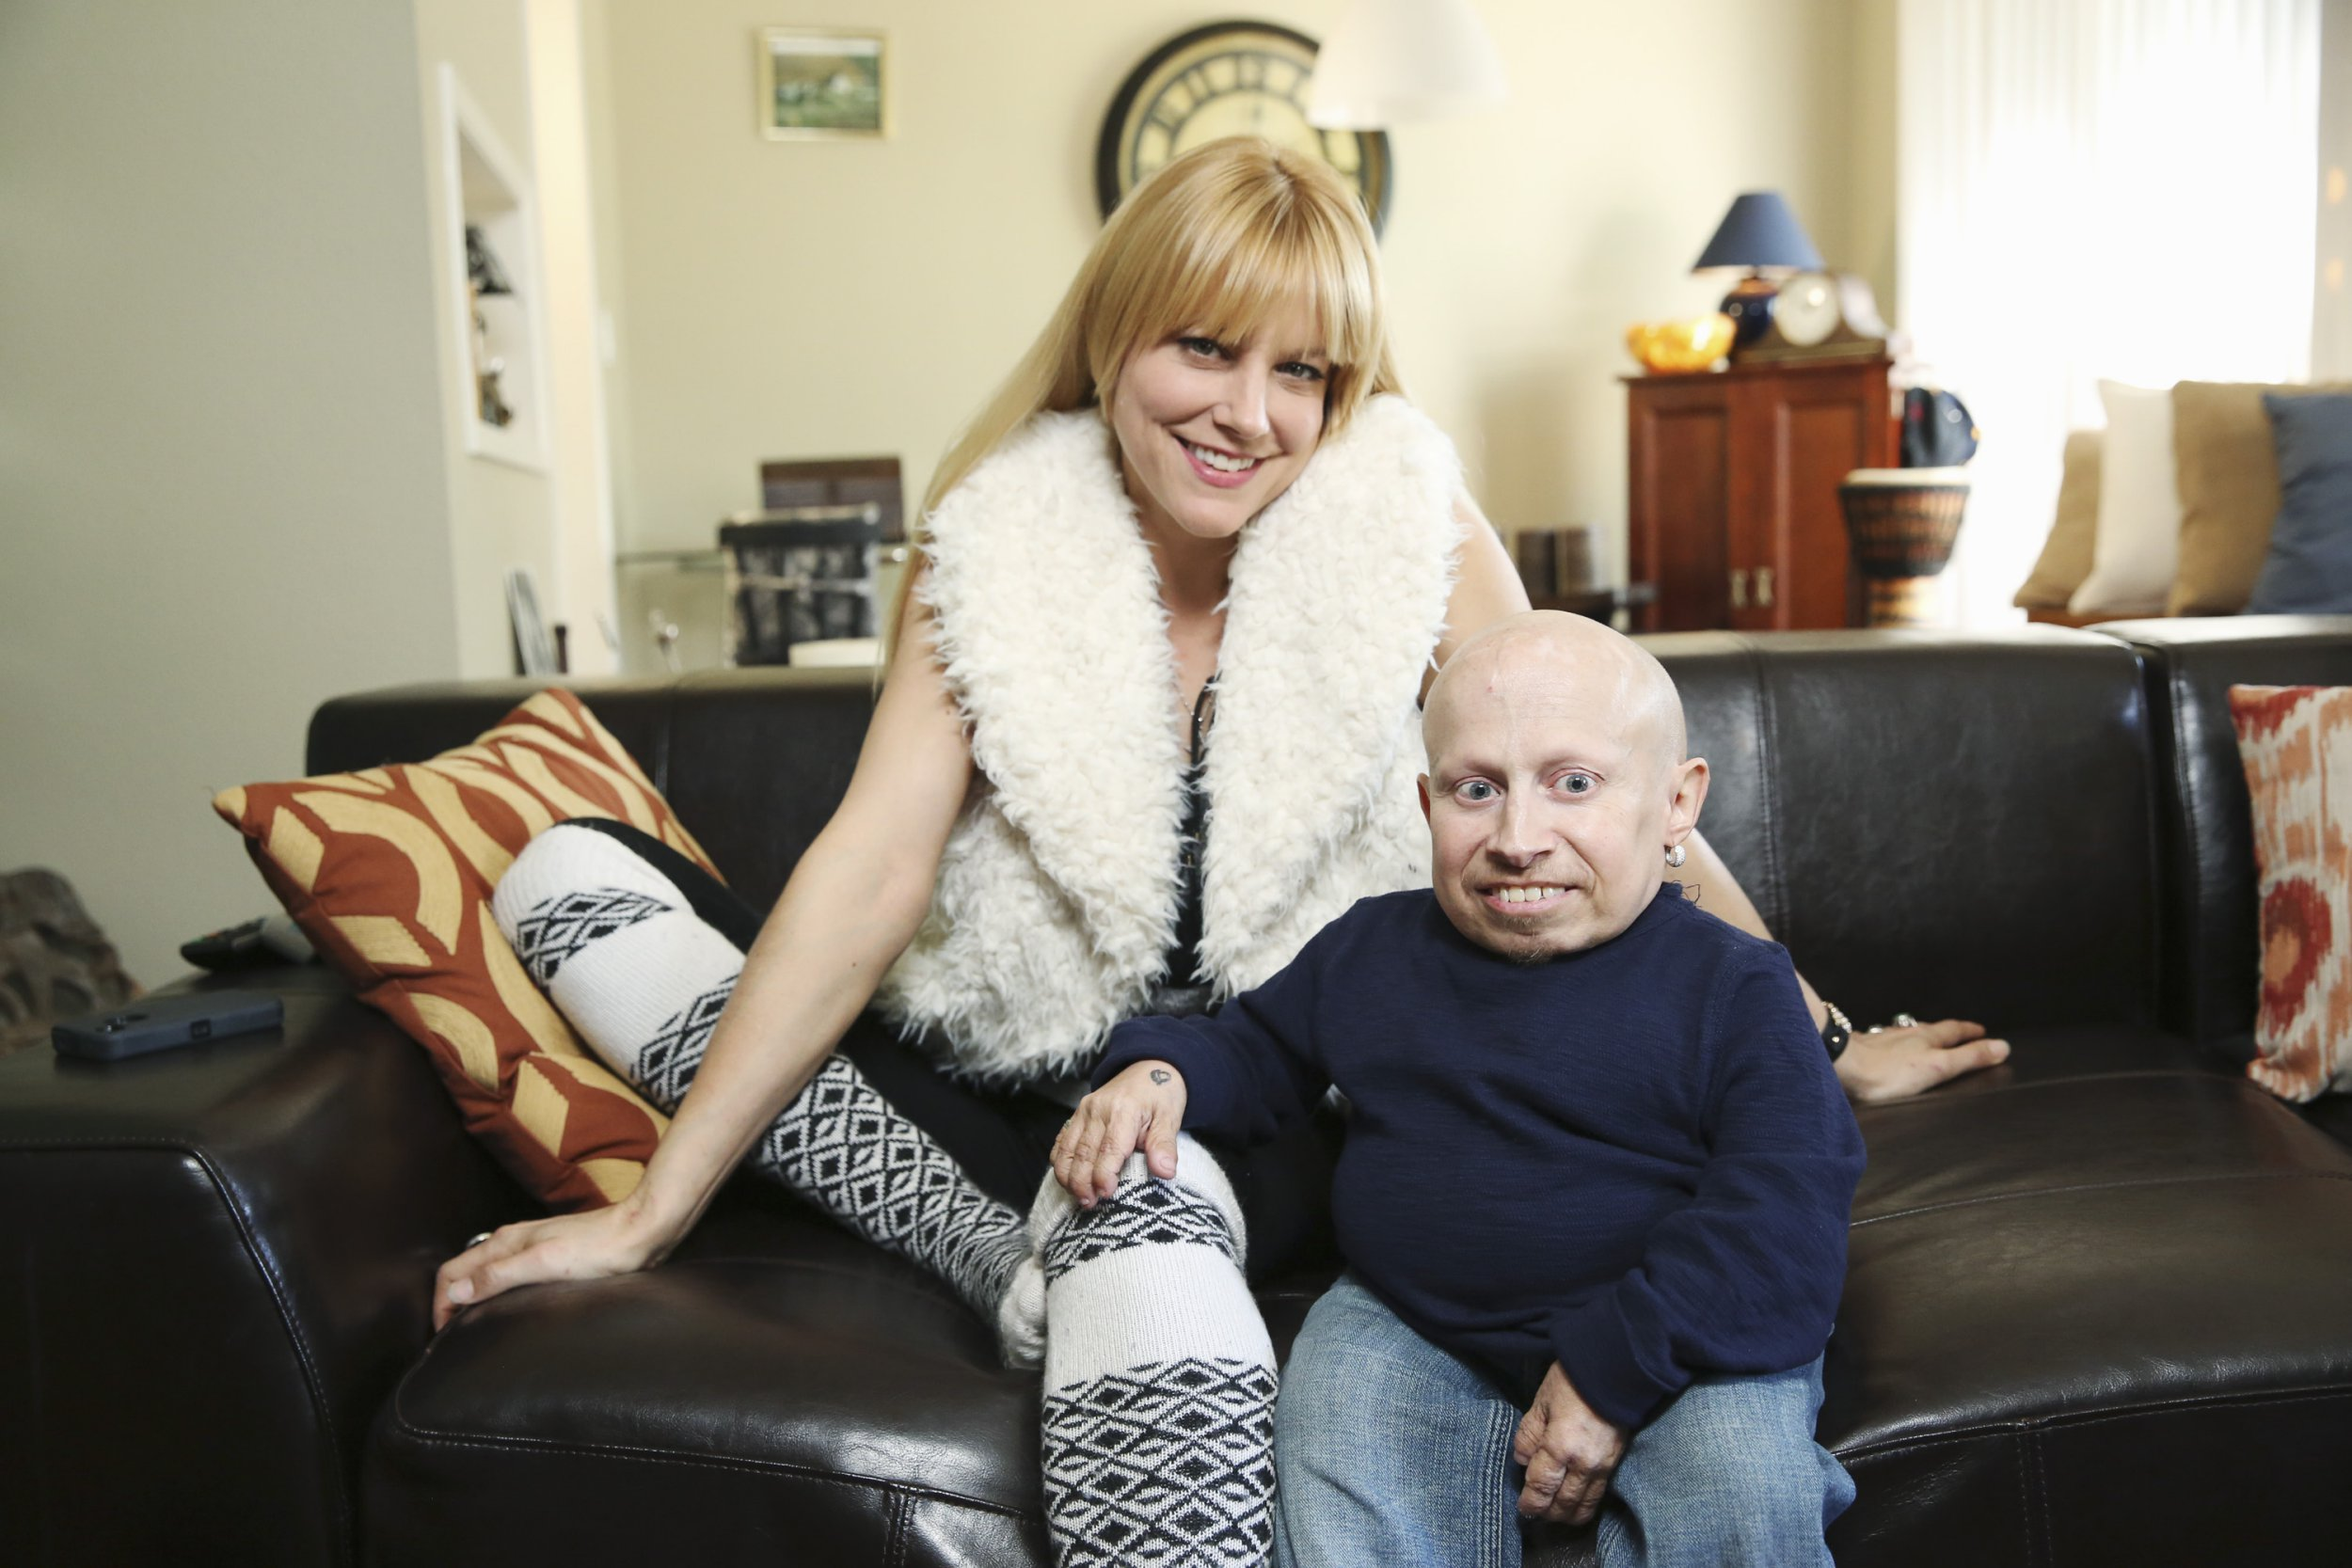 "CELEBRITY WIFE SWAP - ""Verne Troyer/Hines Ward"" - Actor Verne Troyer (""Austin Powers"") and former NFL wide receiver Hines Ward (""Dancing with the Stars"") are featured on ""Celebrity Wife Swap,"" WEDNESDAY, MAY 27 (10:00--11:00 p.m., ET) on the ABC Television Network. Verne Troyer is best known for his role as Mini-Me in the Austin Powers movie franchise. He resides in Los Angeles, CA with his girlfriend Brittney and her son Tyson where Brittney takes the lead on parenting Tyson who is allowed to have ""free range,"" coming and going as he pleases. Verne finds it hard to navigate and go outside without being recognized, so as a result, he enjoys spending the majority of his time at home in his game room, which is the only room in his home designed to accommodate his small stature. (Photo by Adam Taylor/ABC via Getty Images)"